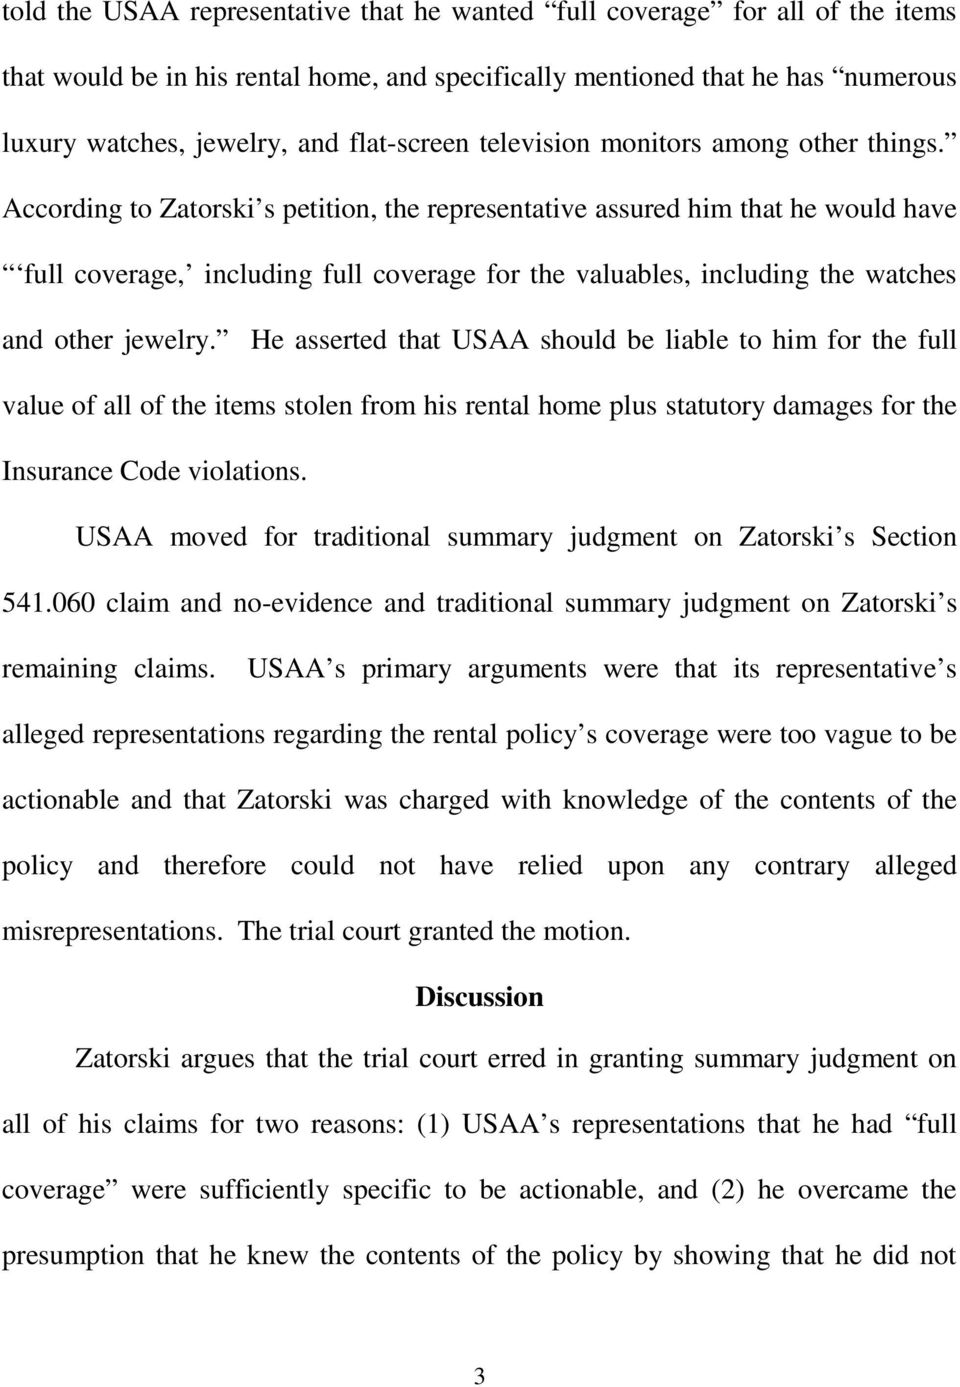 According to Zatorski s petition, the representative assured him that he would have full coverage, including full coverage for the valuables, including the watches and other jewelry.